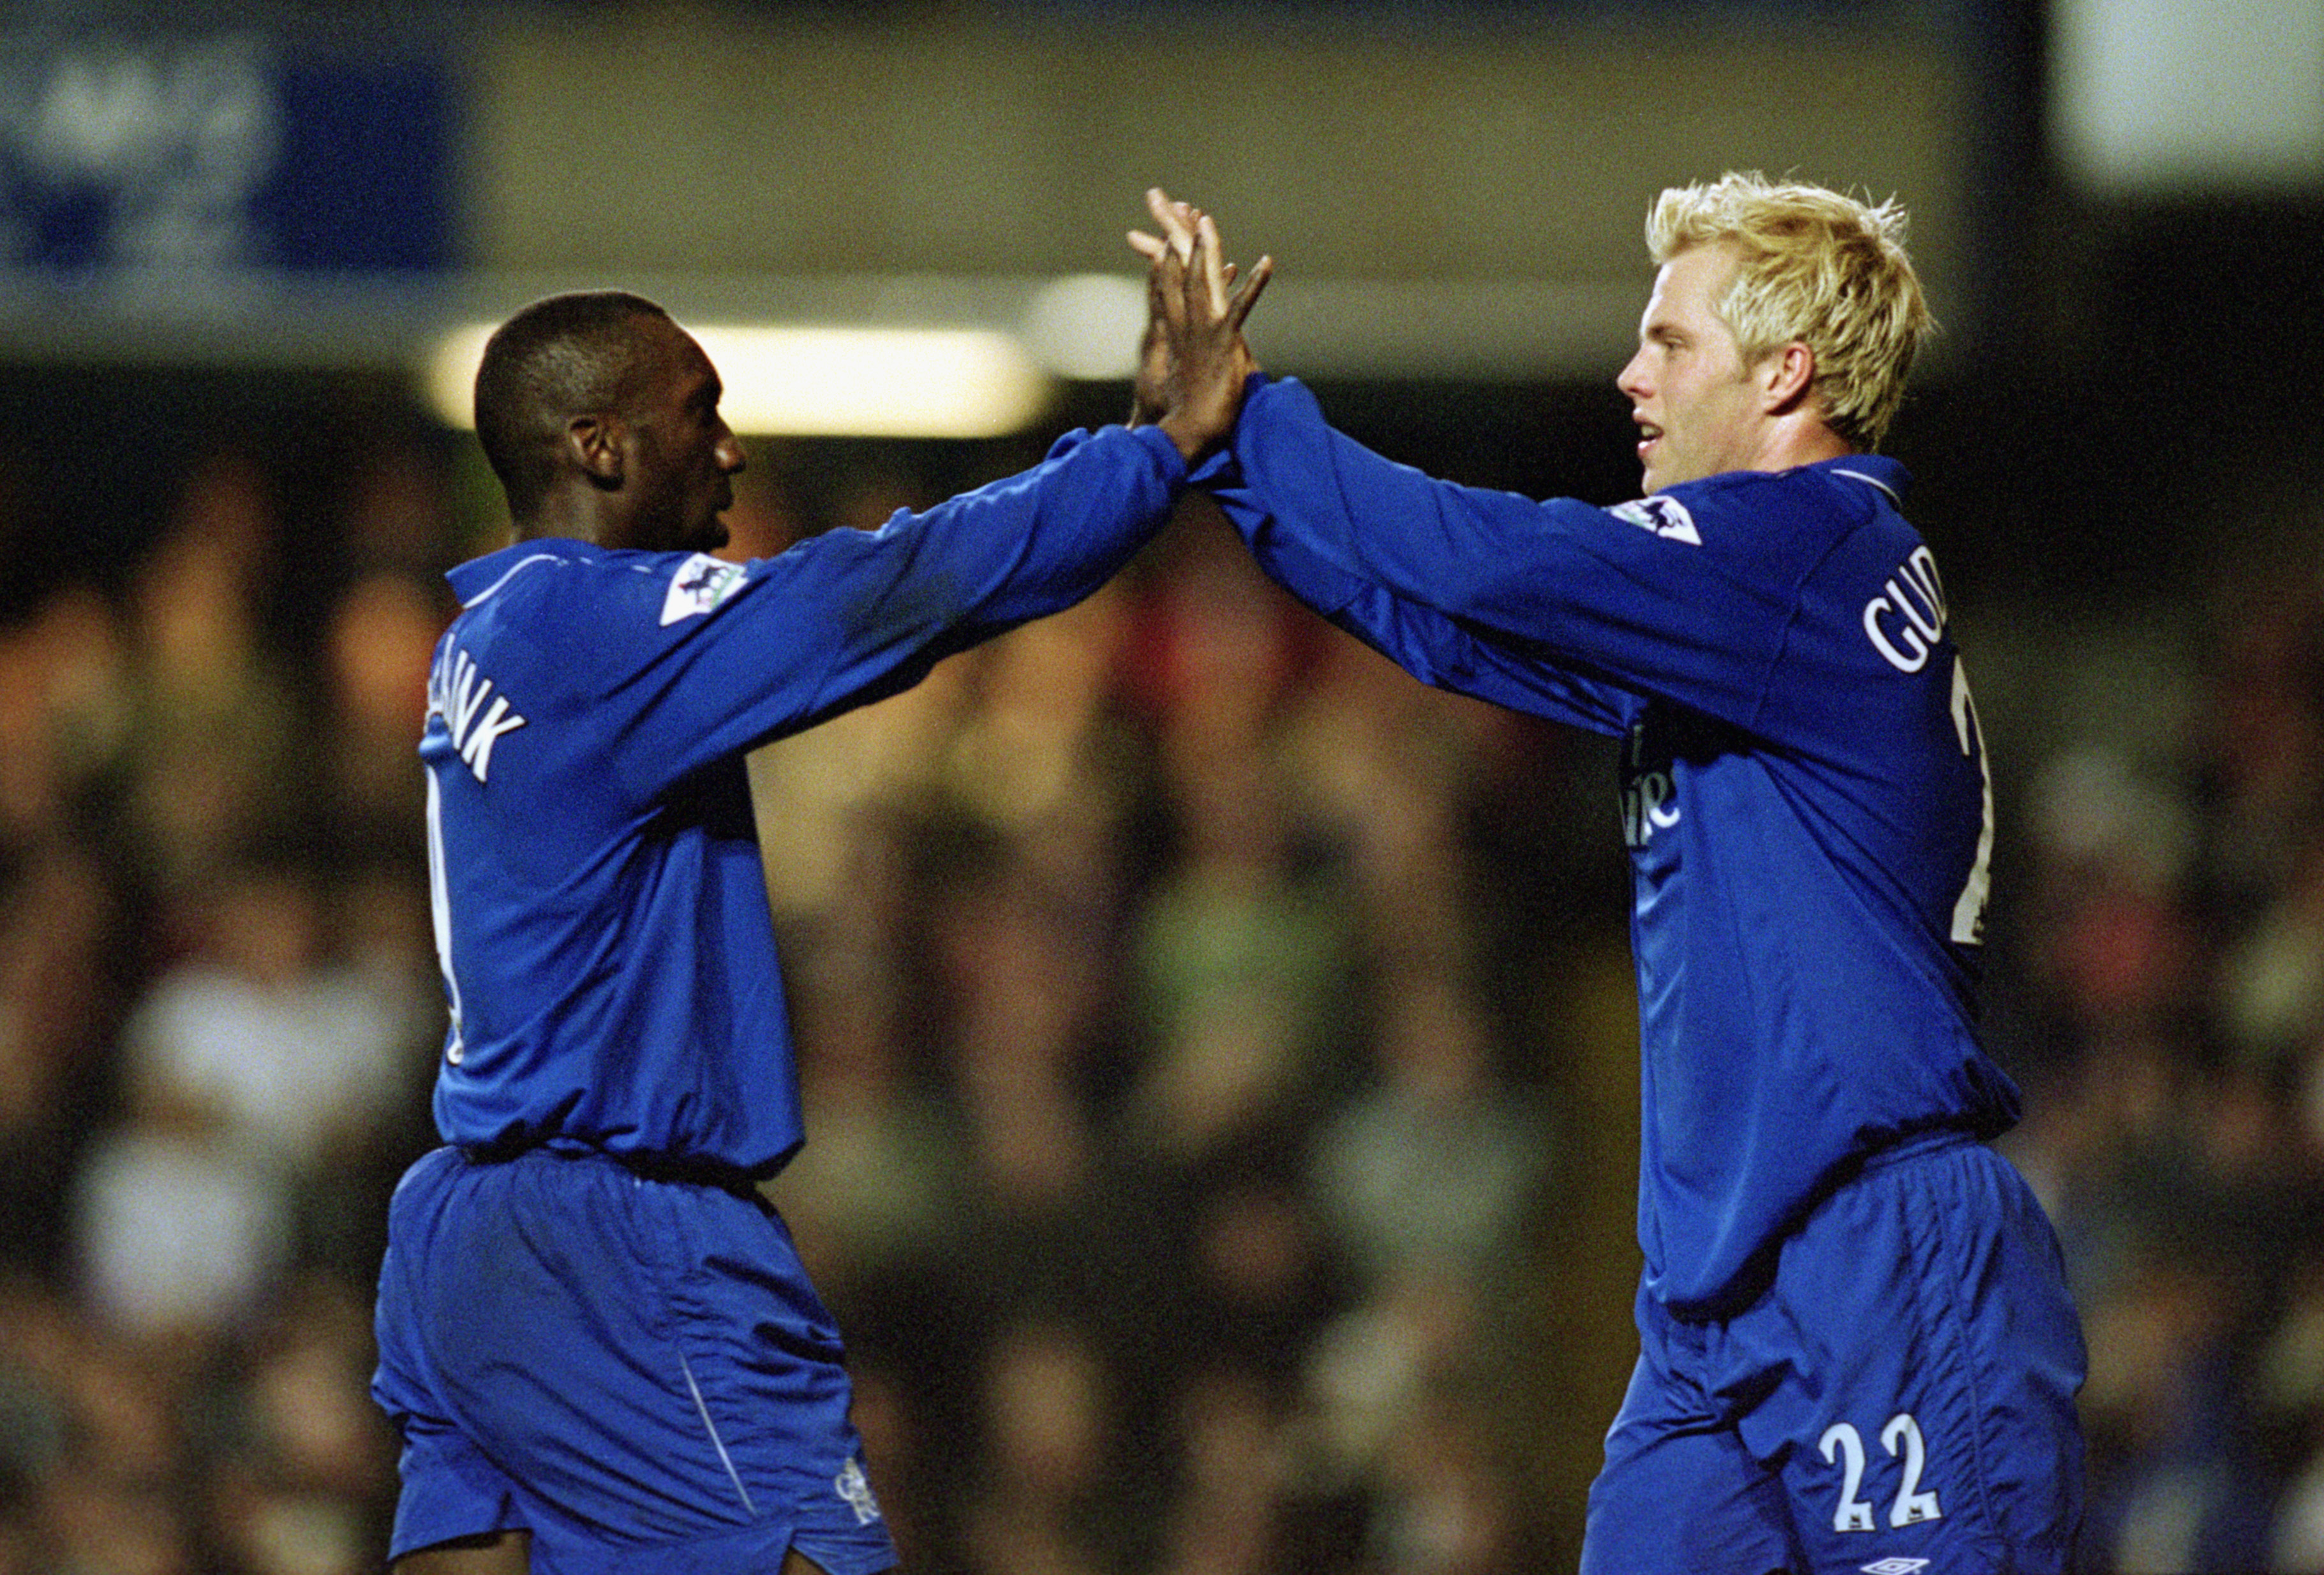 LONDON - MARCH 6:  Eidur Gudjohnsen of Chelsea celebrates his goal with team-mate Jimmy Floyd Hasselbaink during the FA Barclaycard Premiership match between Chelsea and Fulham held on March 6, 2002 at Stamford Bridge, in London. Chelsea won the match 3-2